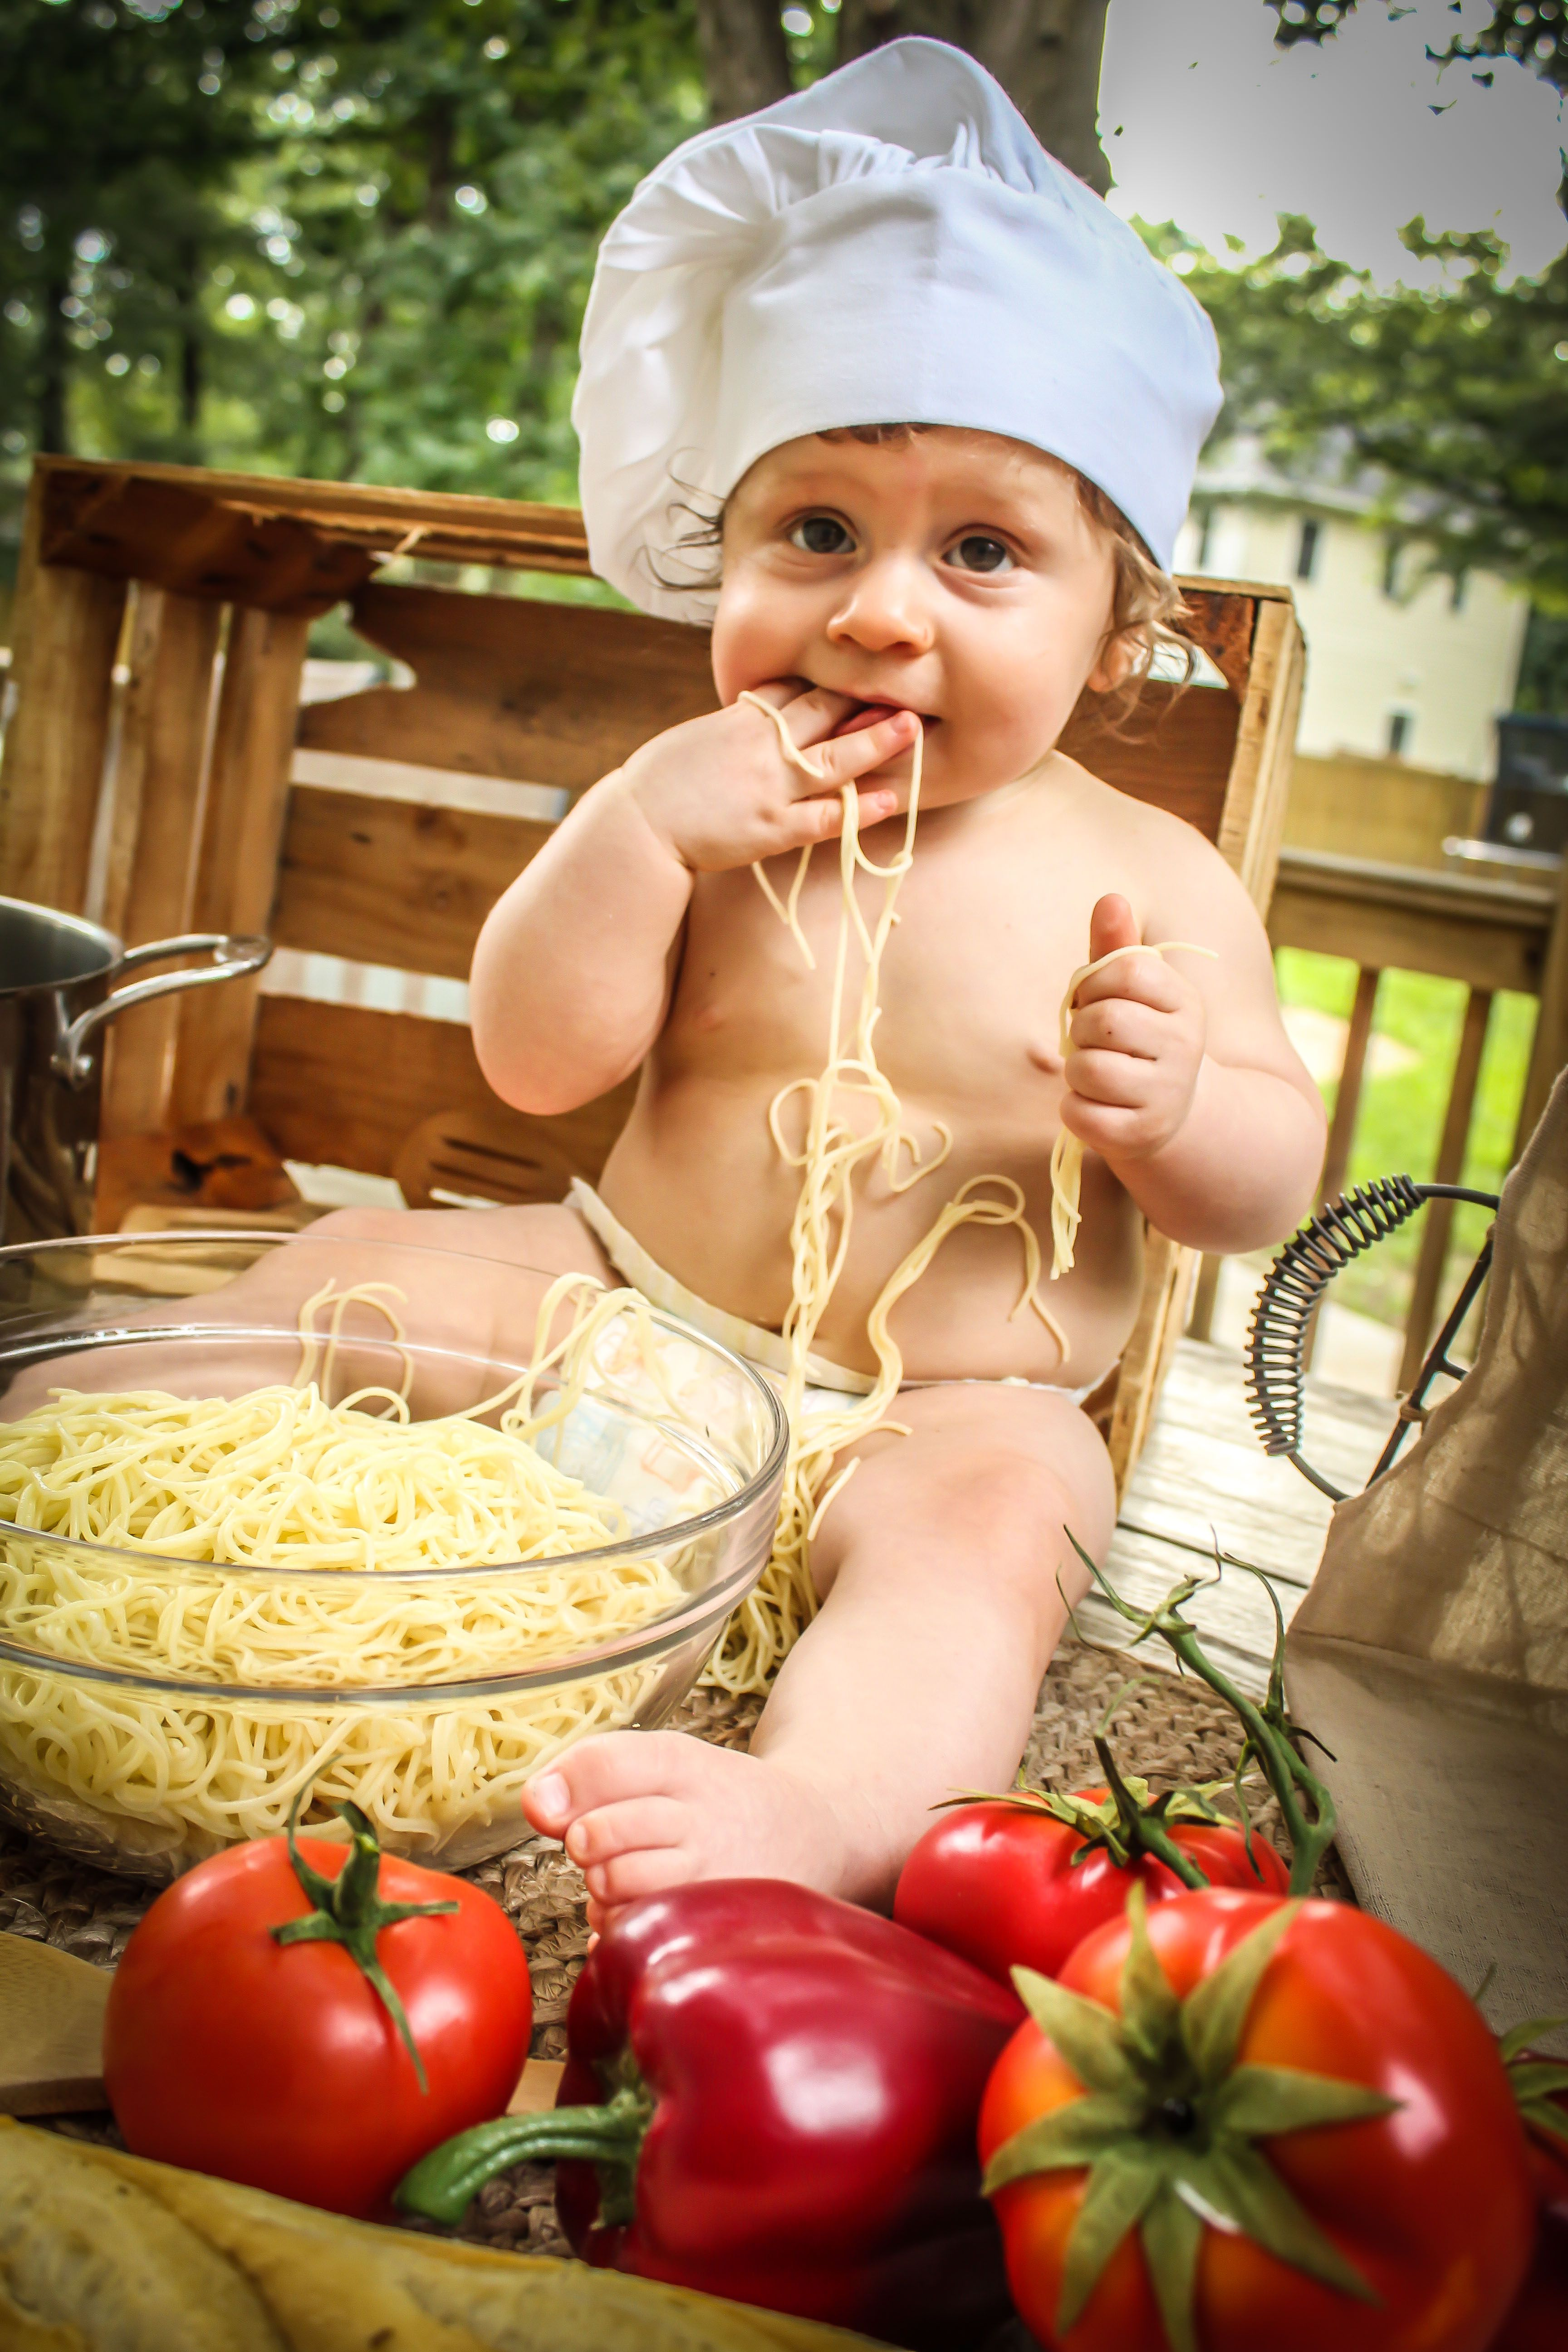 Yesterdays chef inspired baby photoshoot the savory version with chef cole check out salty duchess photography and give us a like and follow on